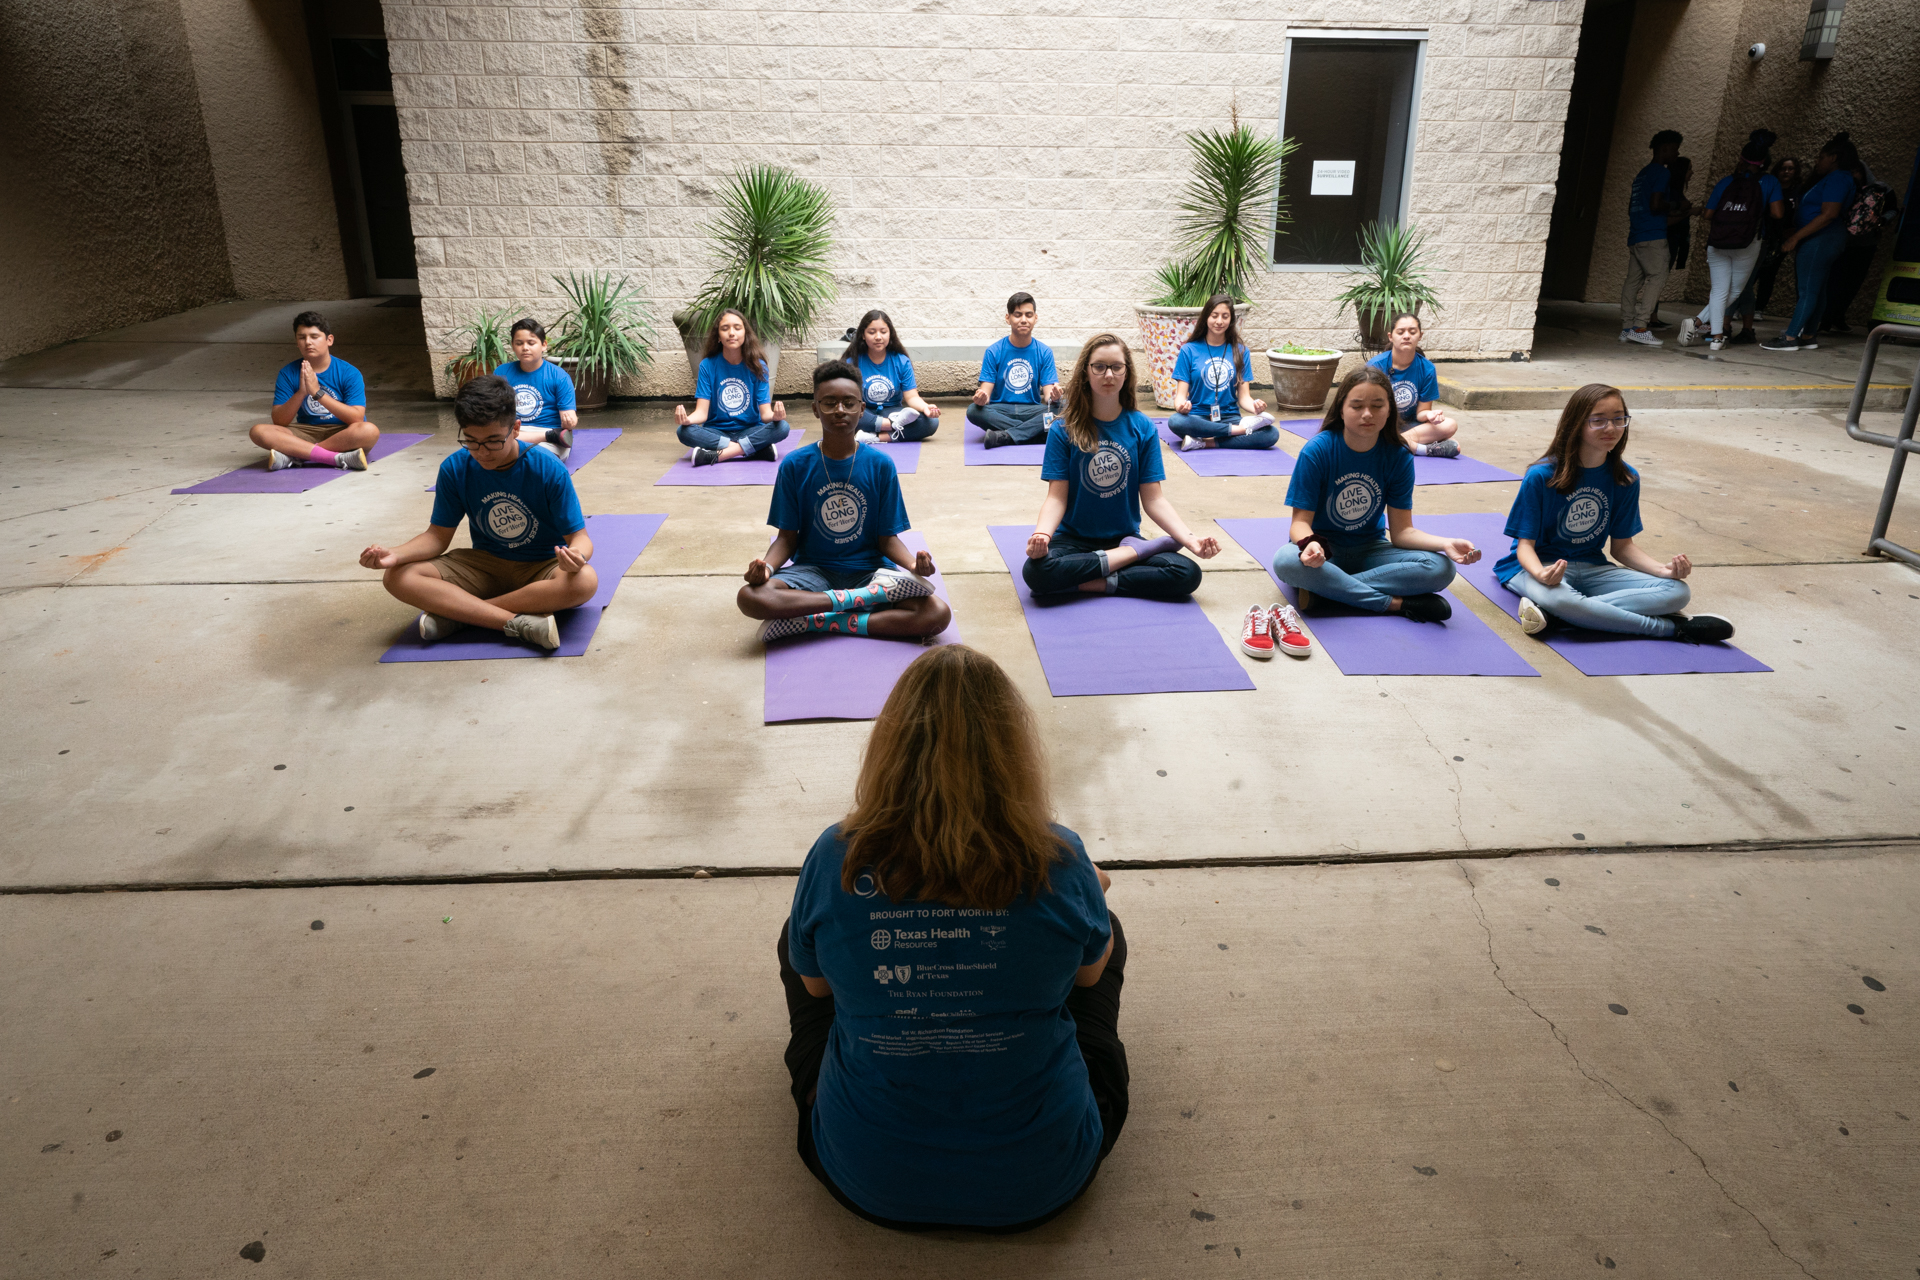 0017_2018-McLain-Sharecare-mid-school-yoga-348-2.jpg